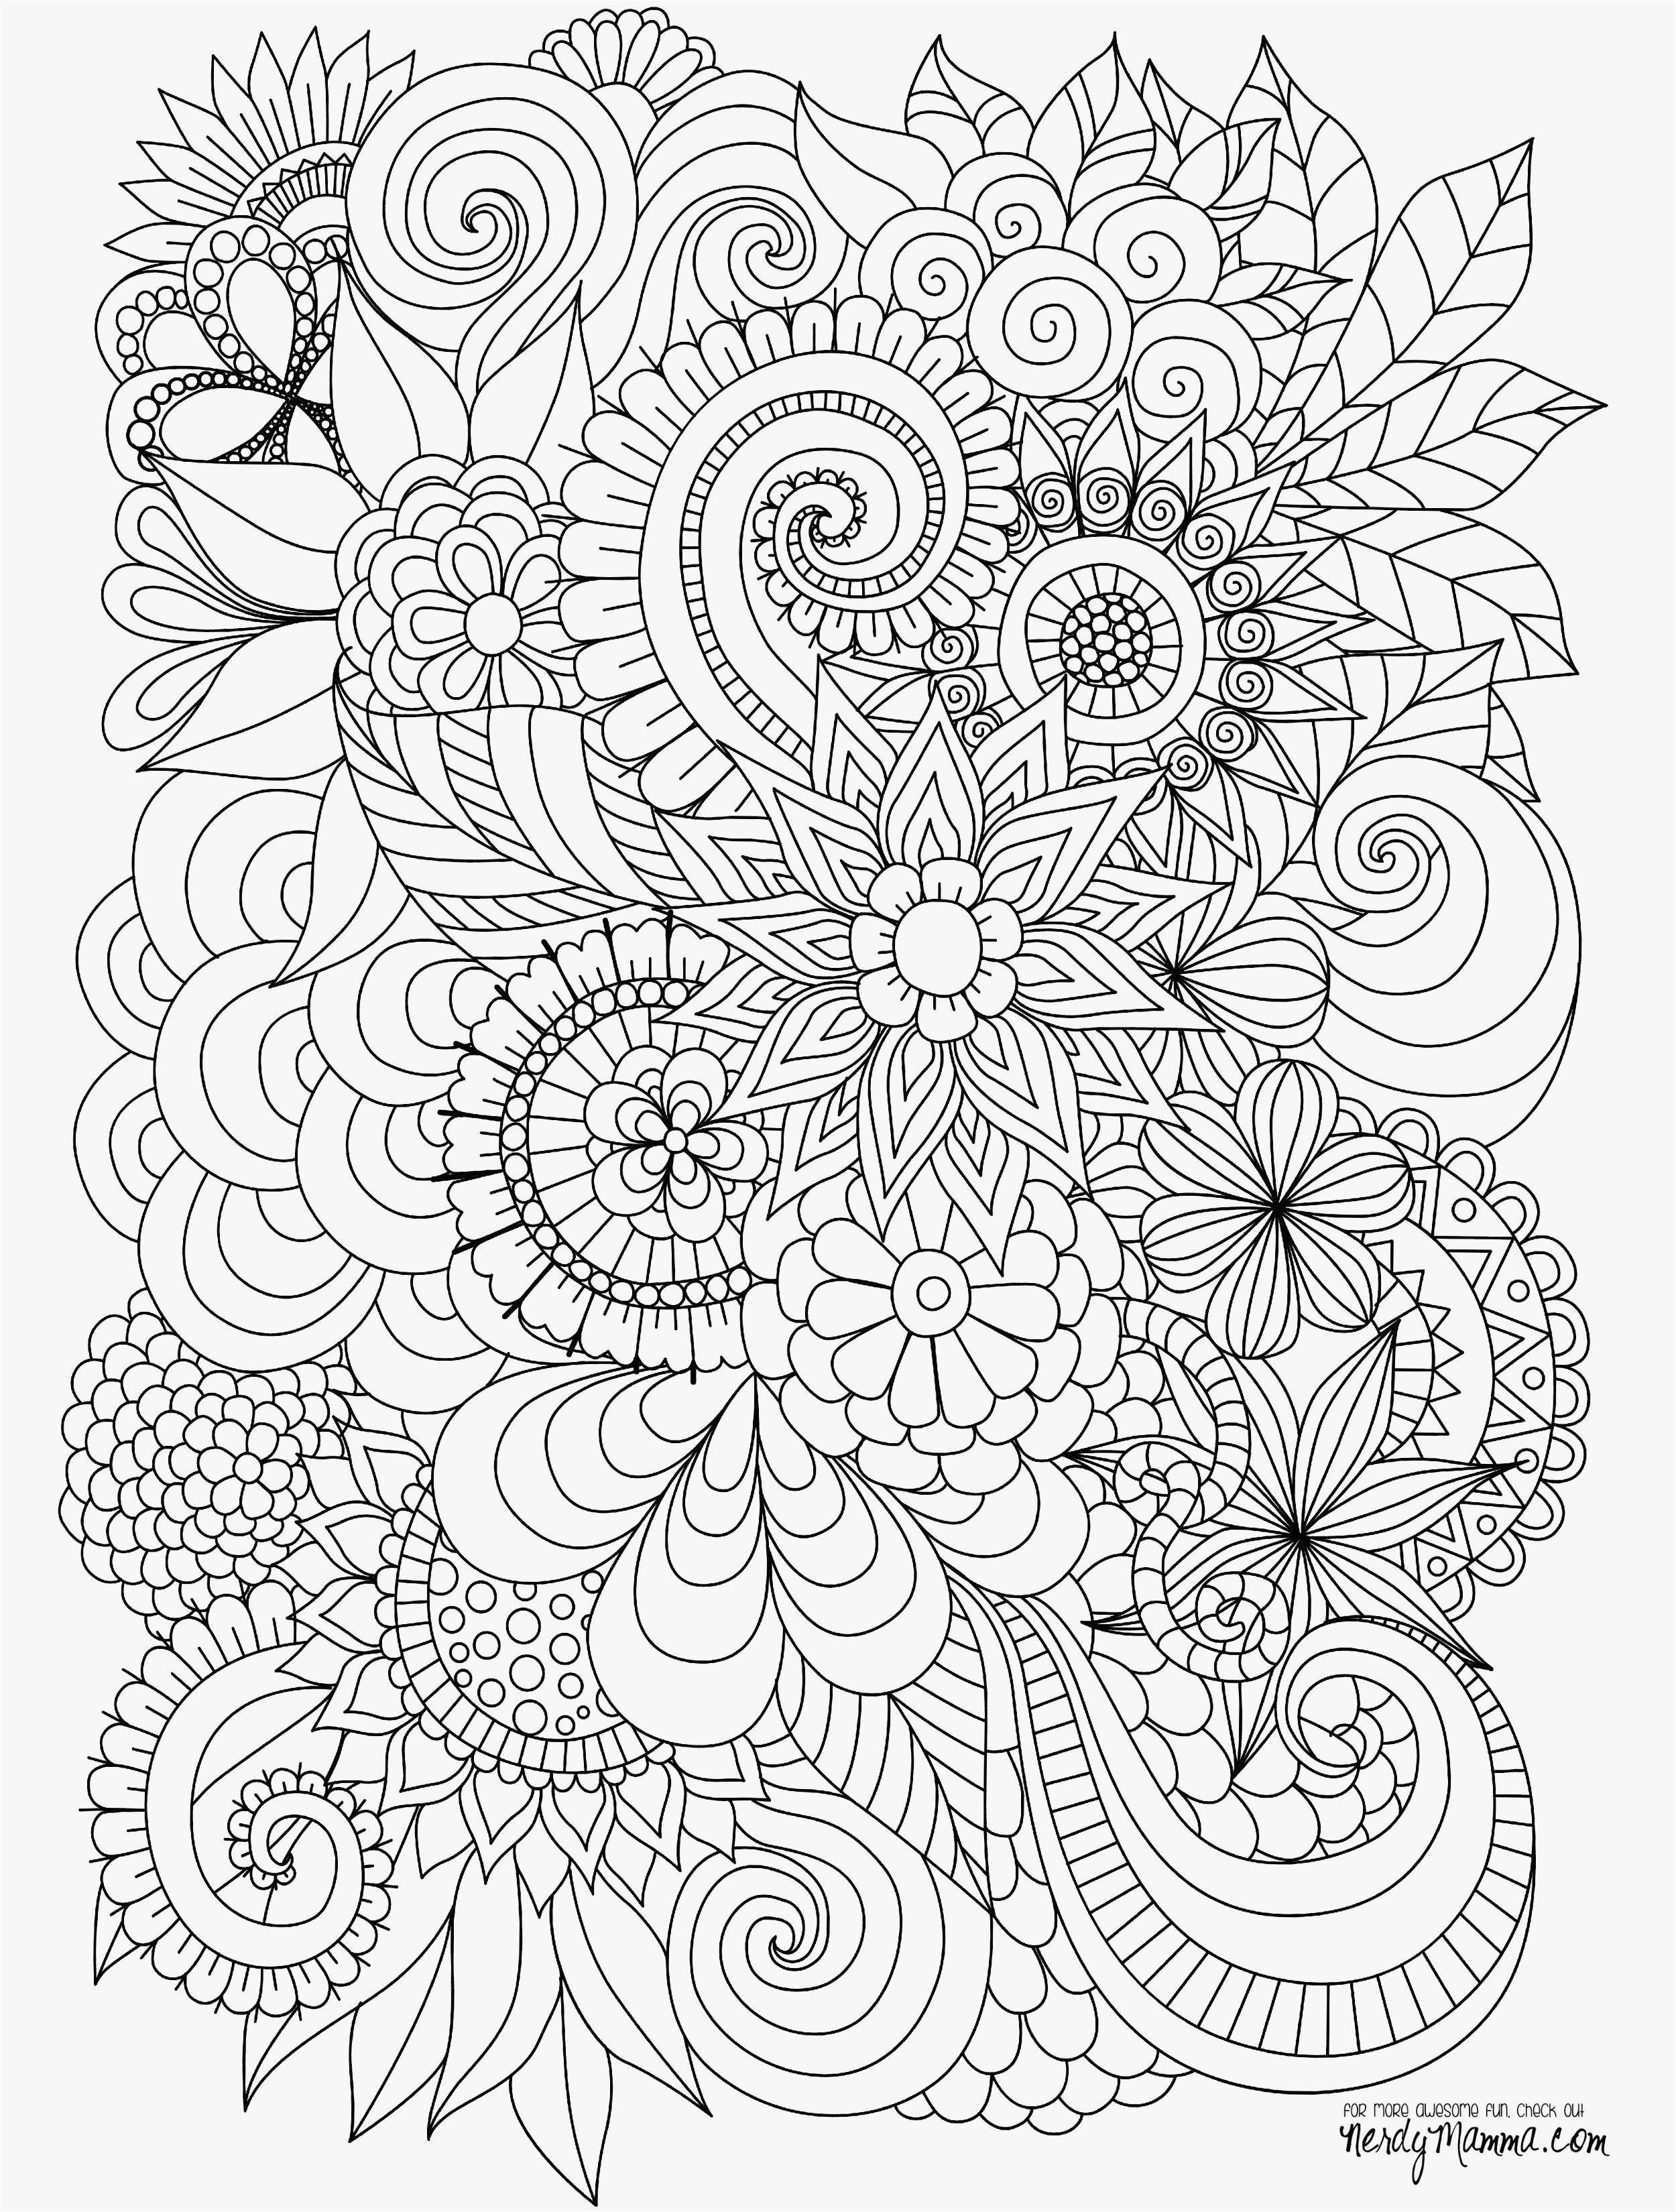 Poetry Coloring Pages  Collection 16r - To print for your project